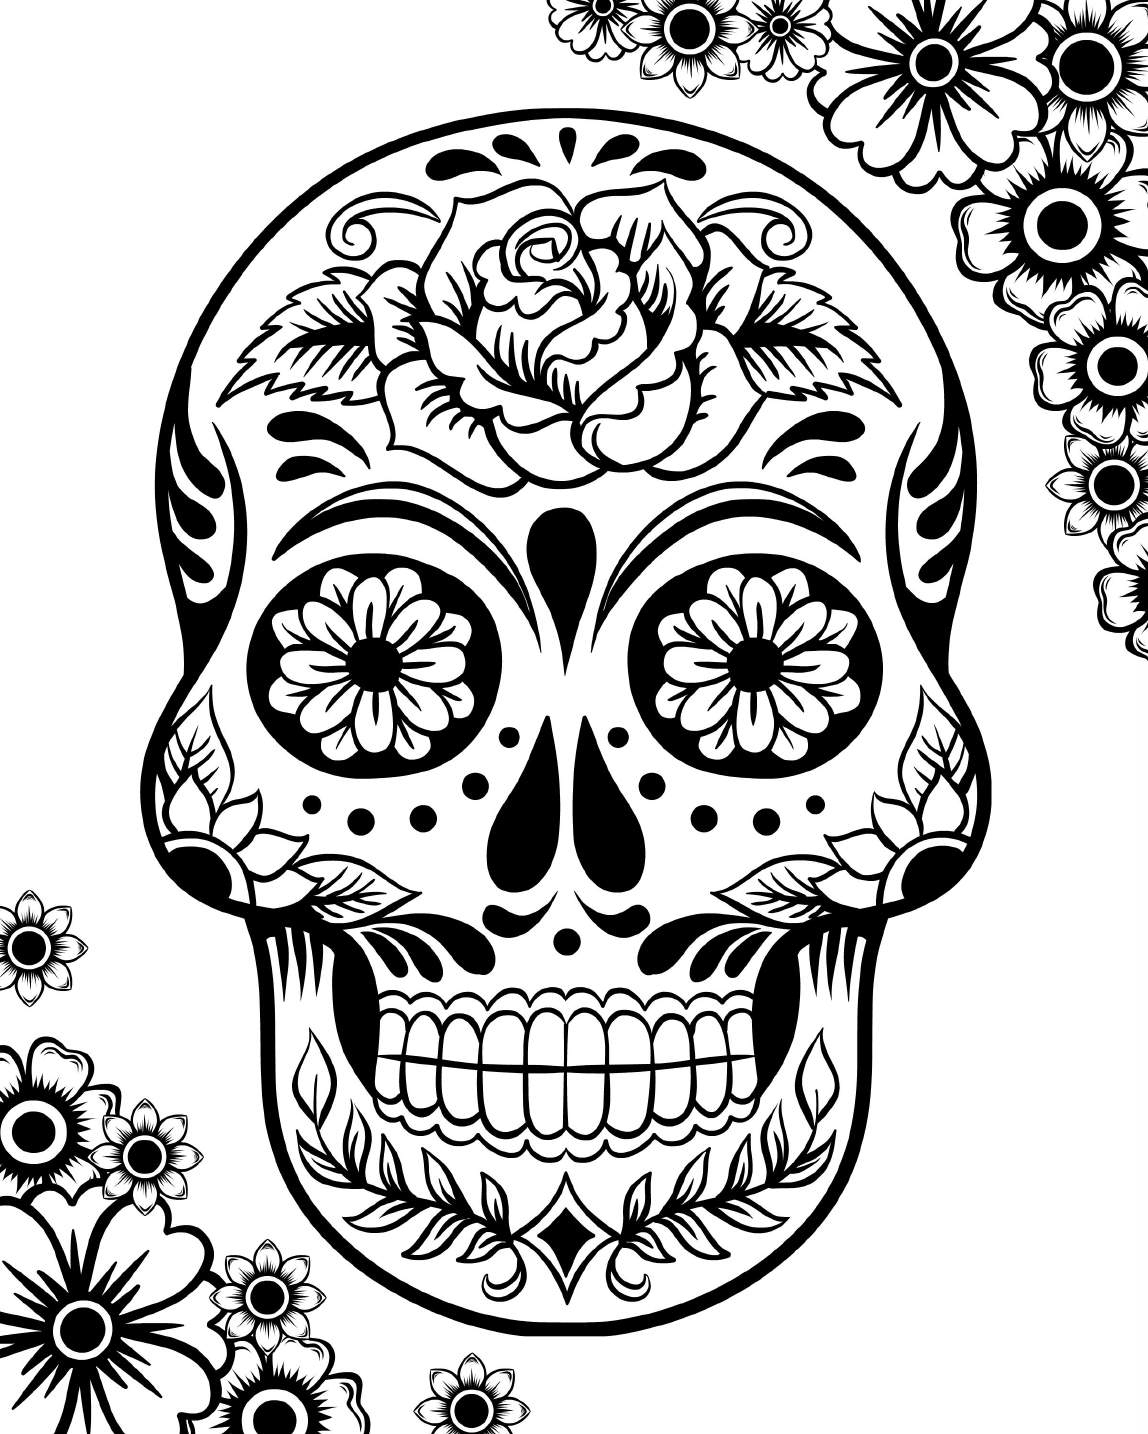 Free Printable Day Of The Dead Coloring Pages - Best Coloring Pages | Free Printable Day Of The Dead Worksheets